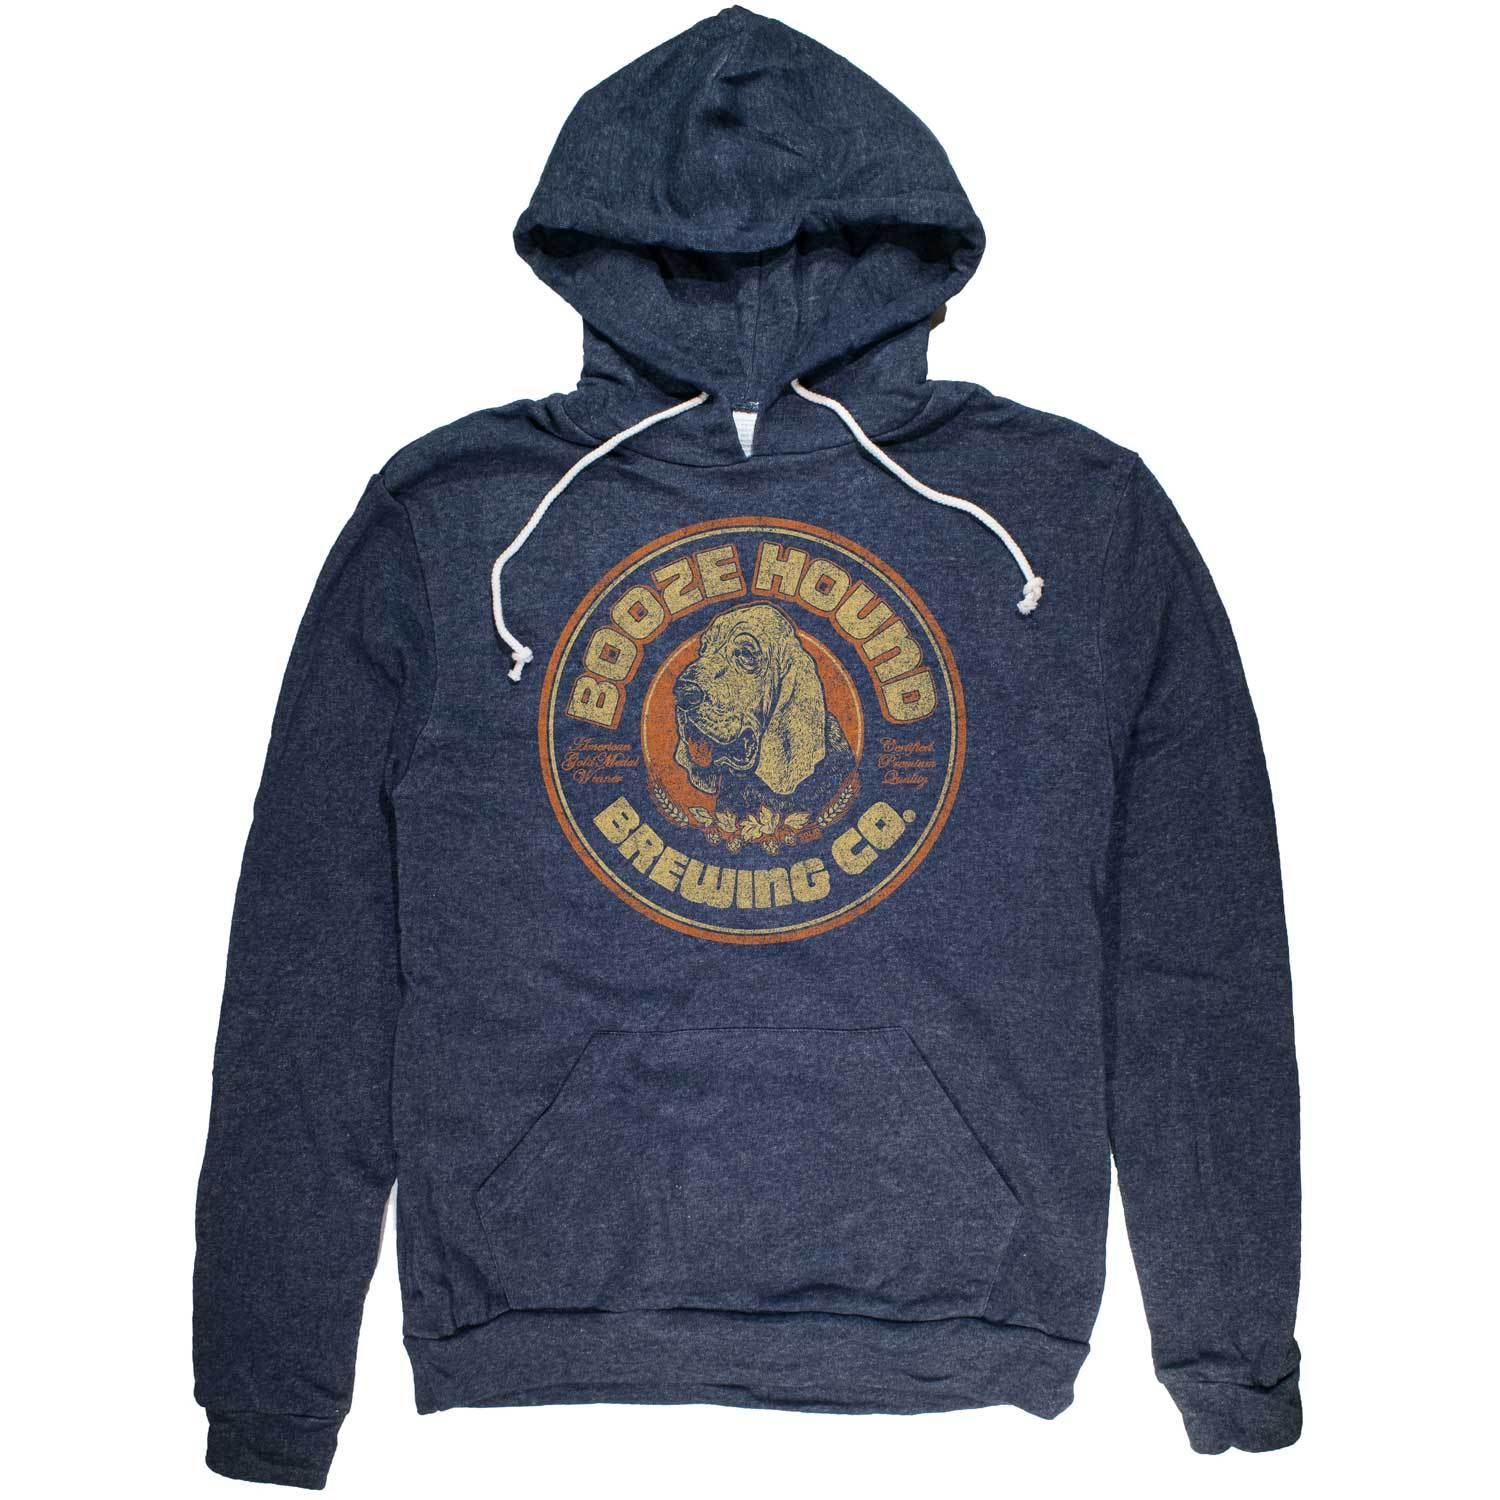 Boozehound Vintage Inspired Pullover Hoodie with funny dog brewery graphic | Solid Threads